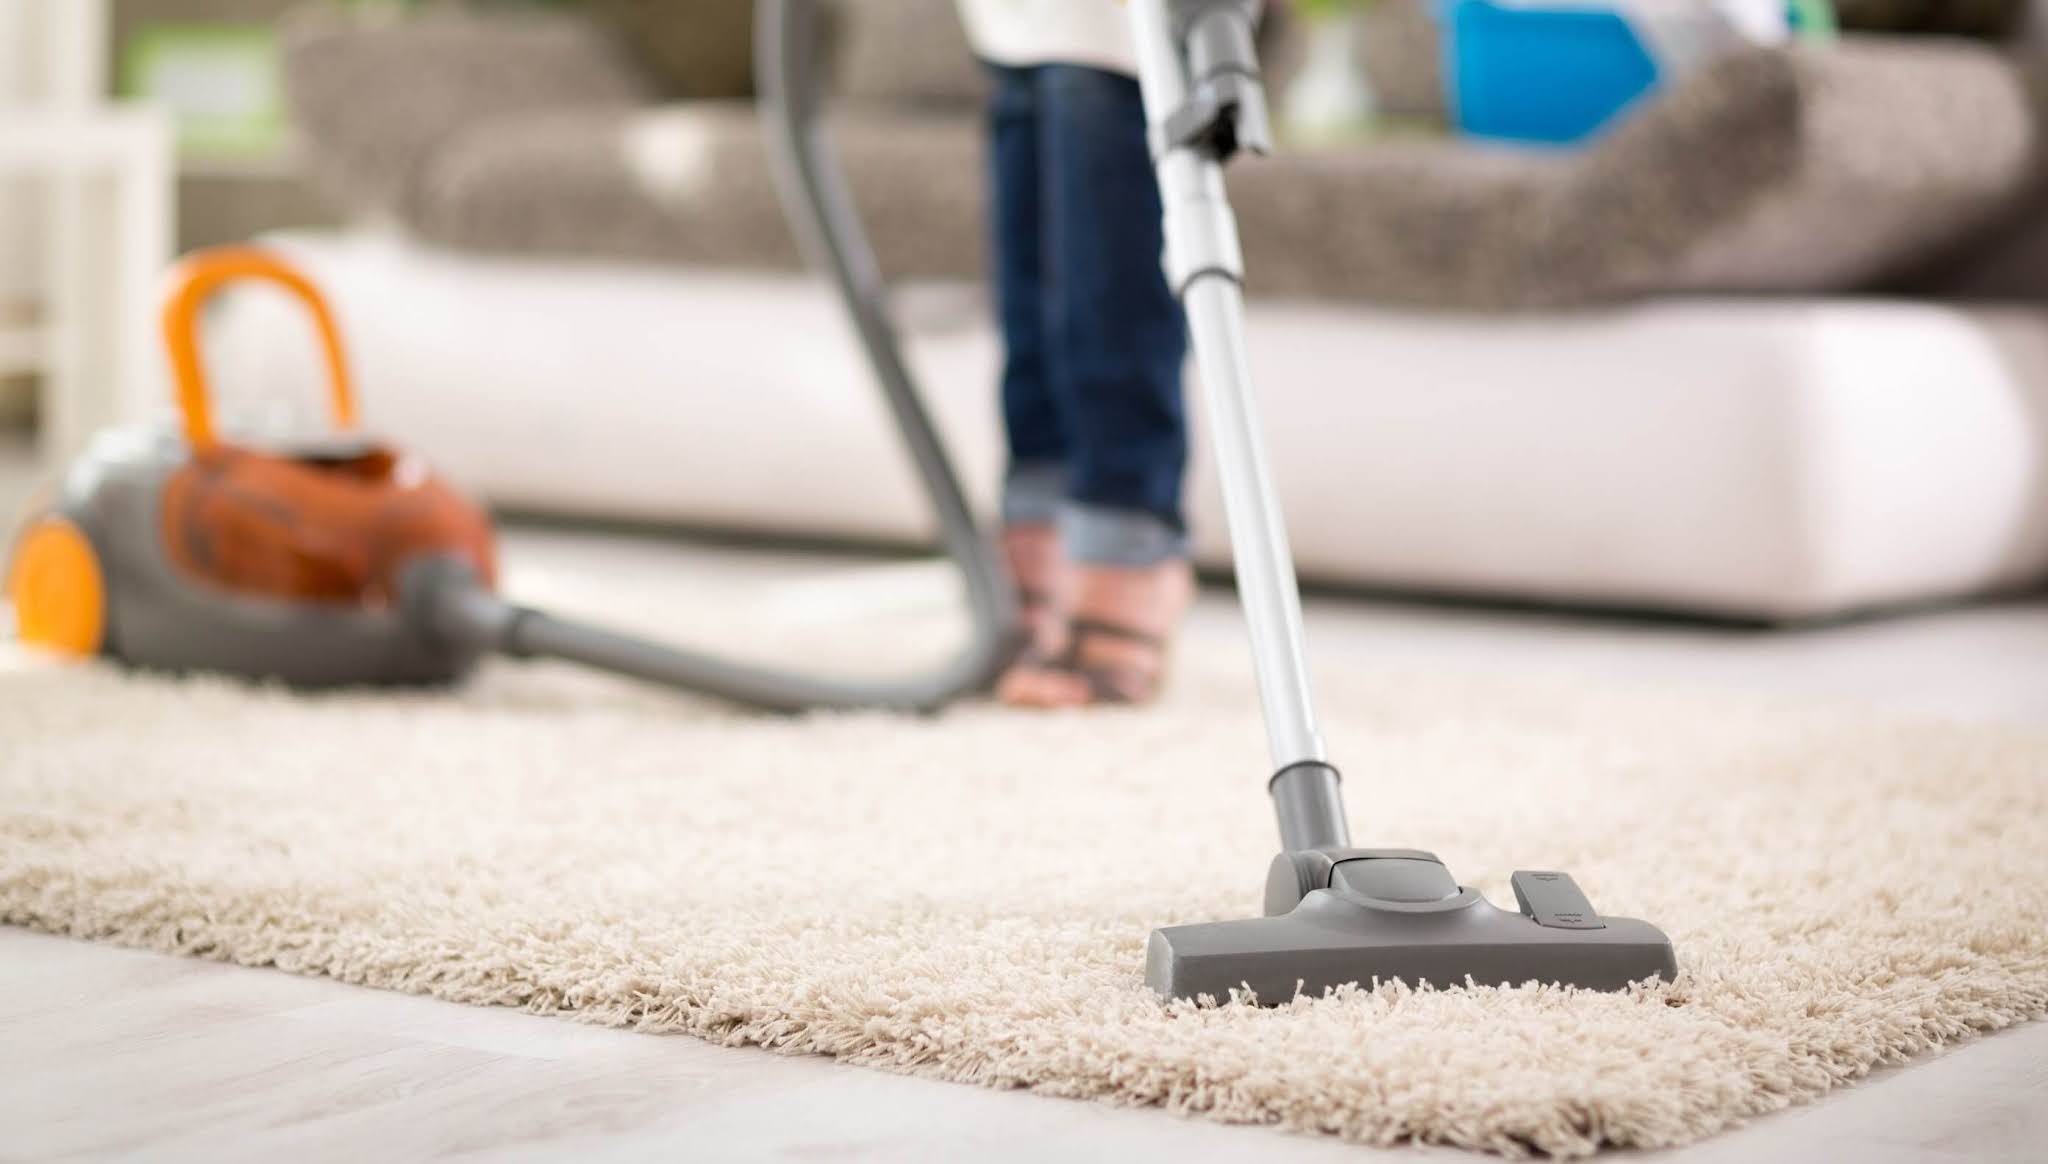 Attention! These are the 10 biggest mistakes when vacuuming